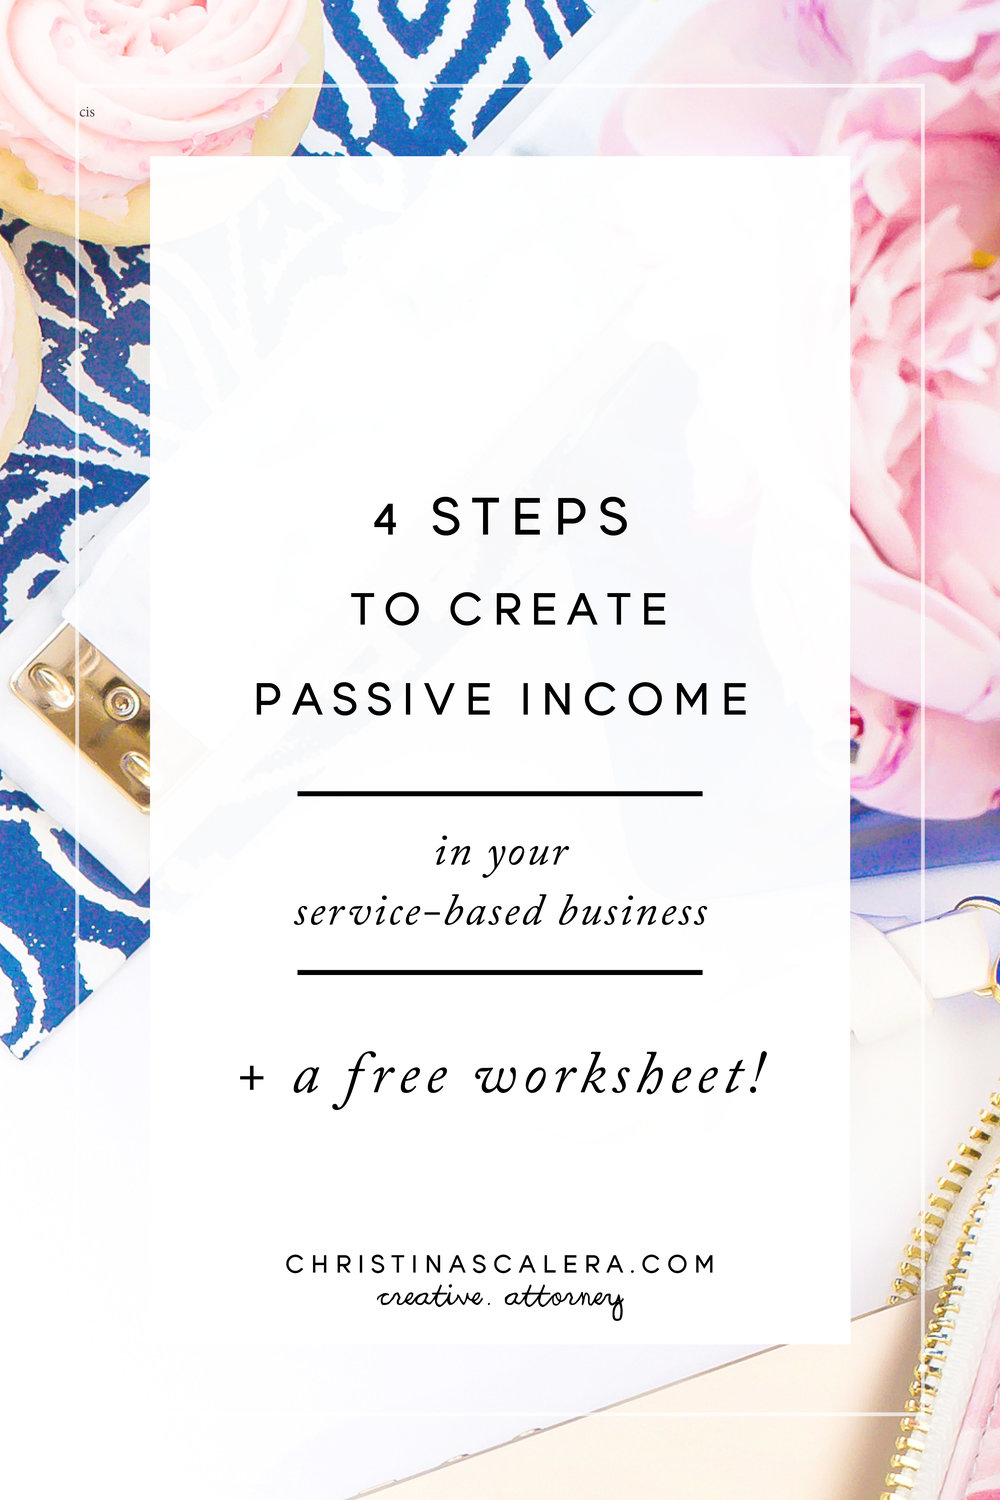 4 Steps to Create Passive Income in your Service Business' - Christina Scalera, Creative Attorney